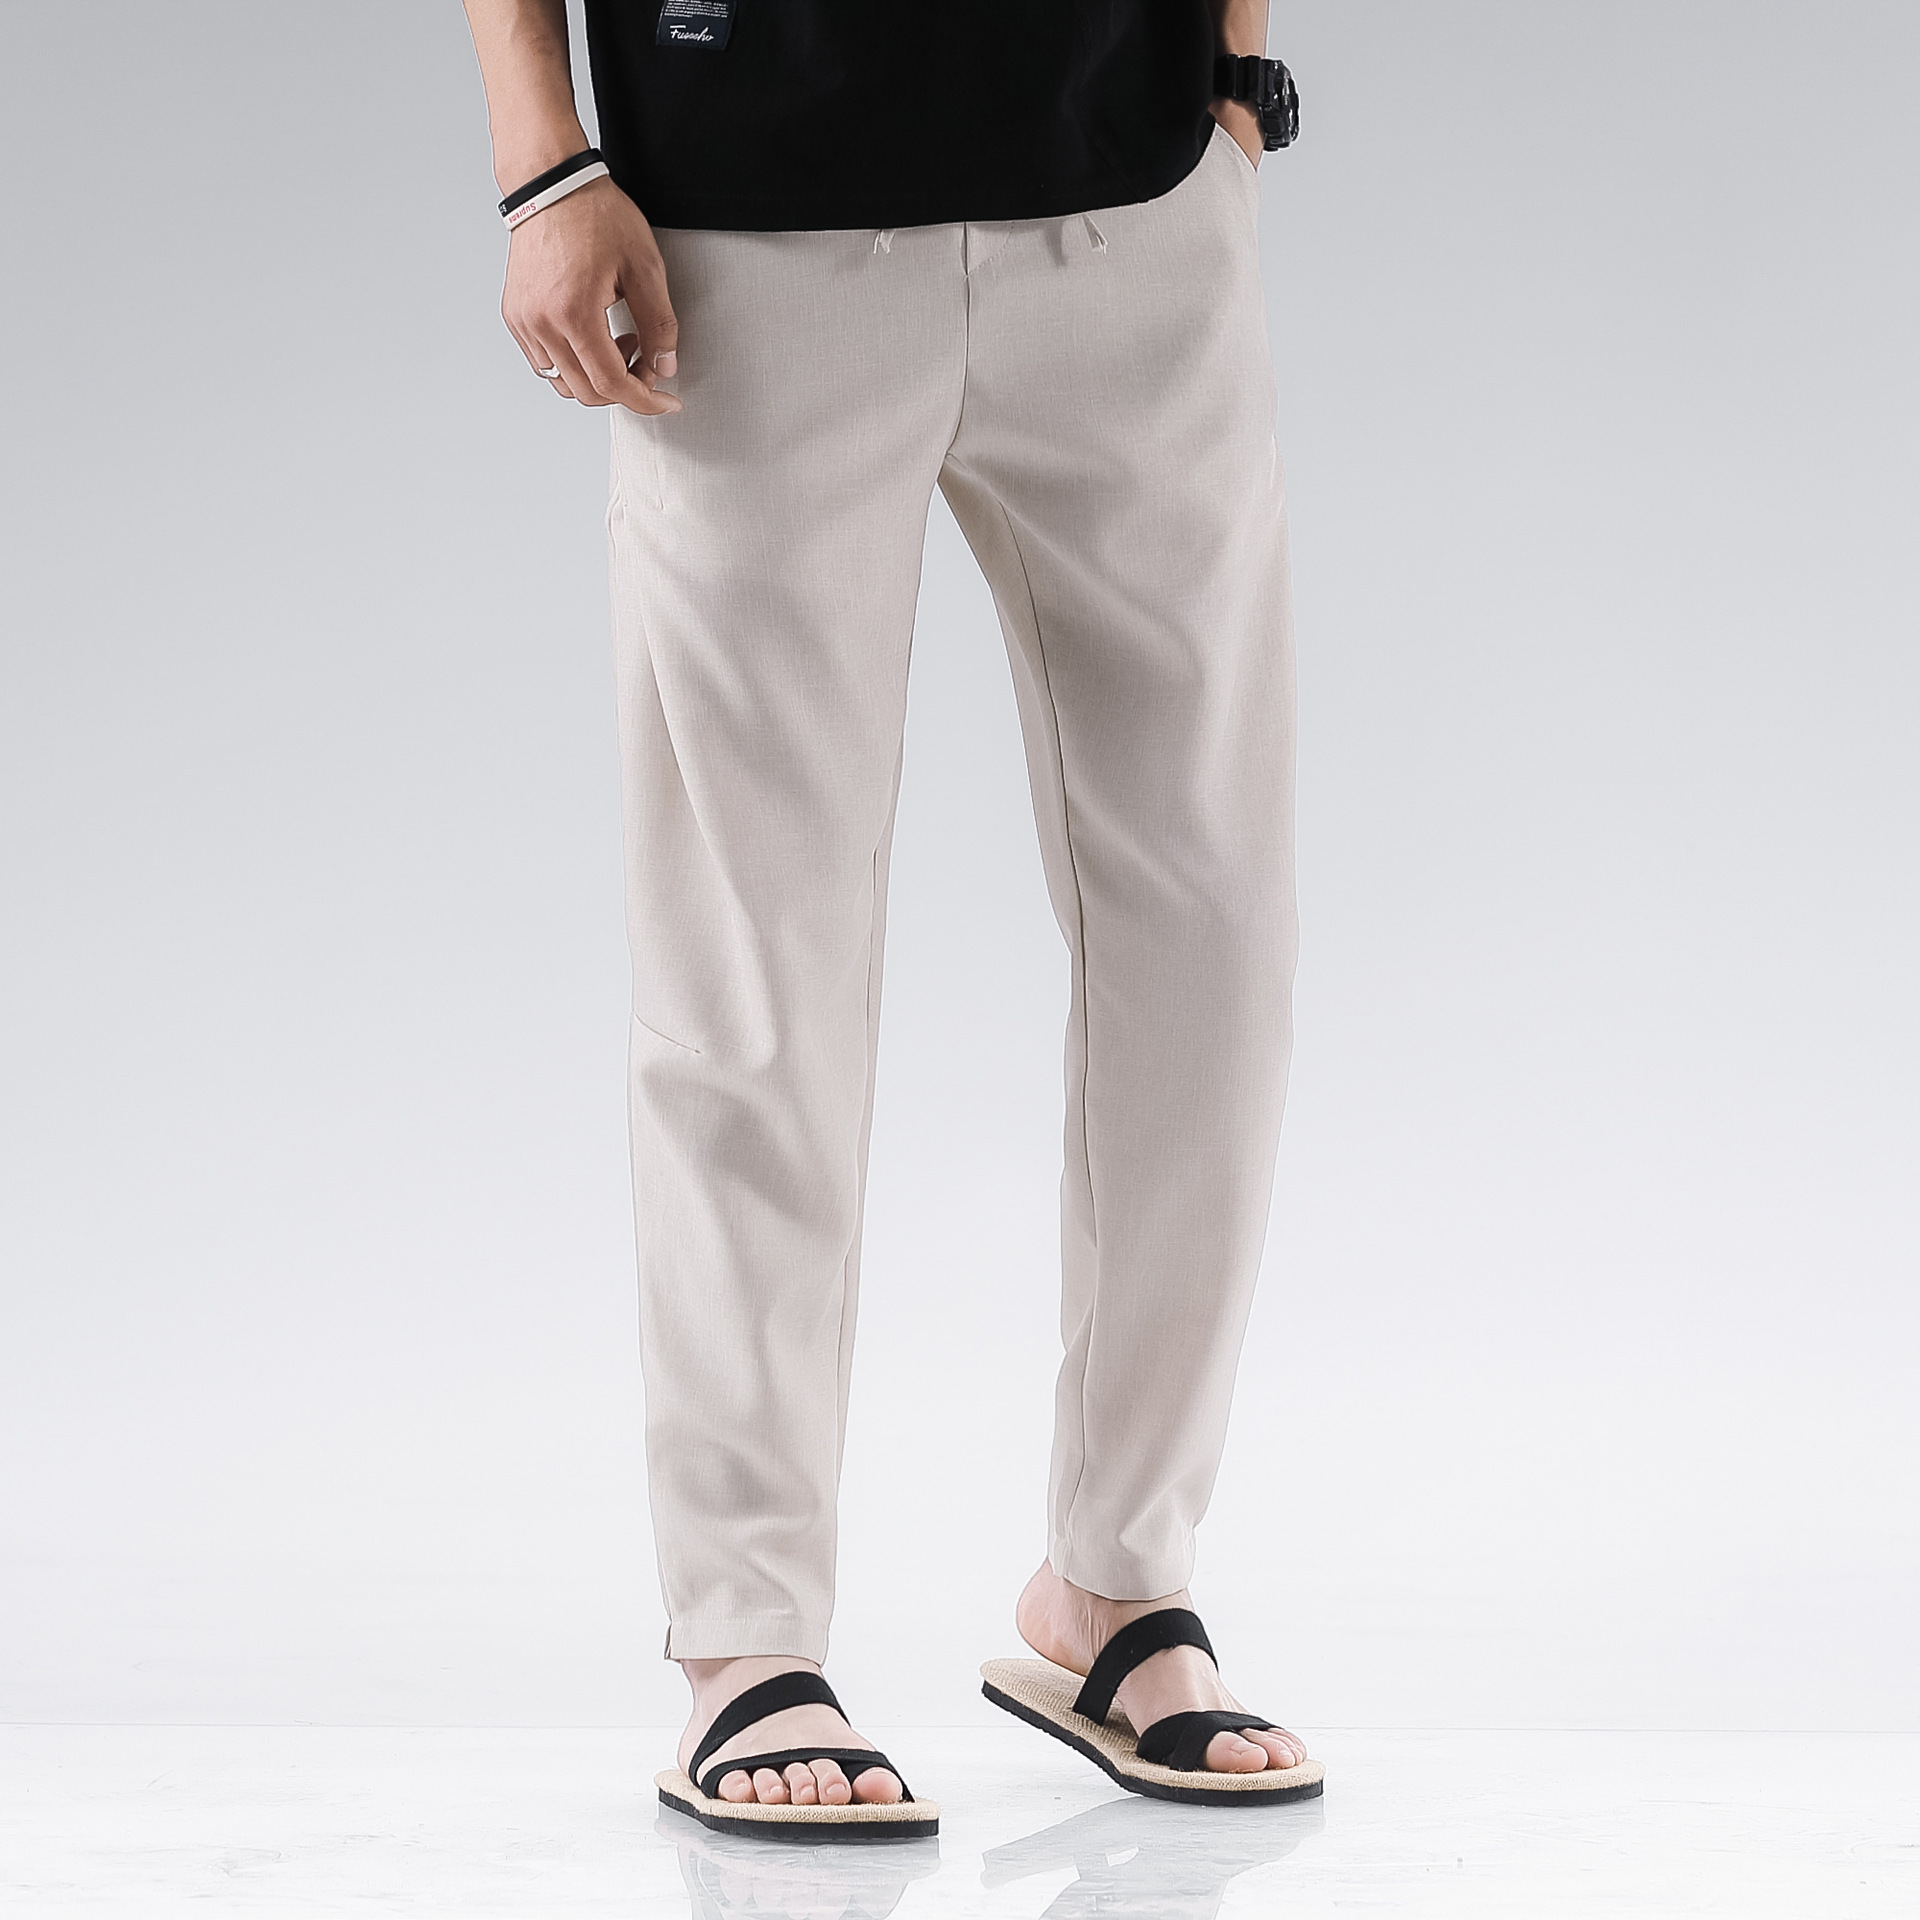 Linen Pants Men's Summer Solid Color Casual Pants Large Size Harem Pants Trend Chinese-style Loose Straight Cotton Linen Long Pa